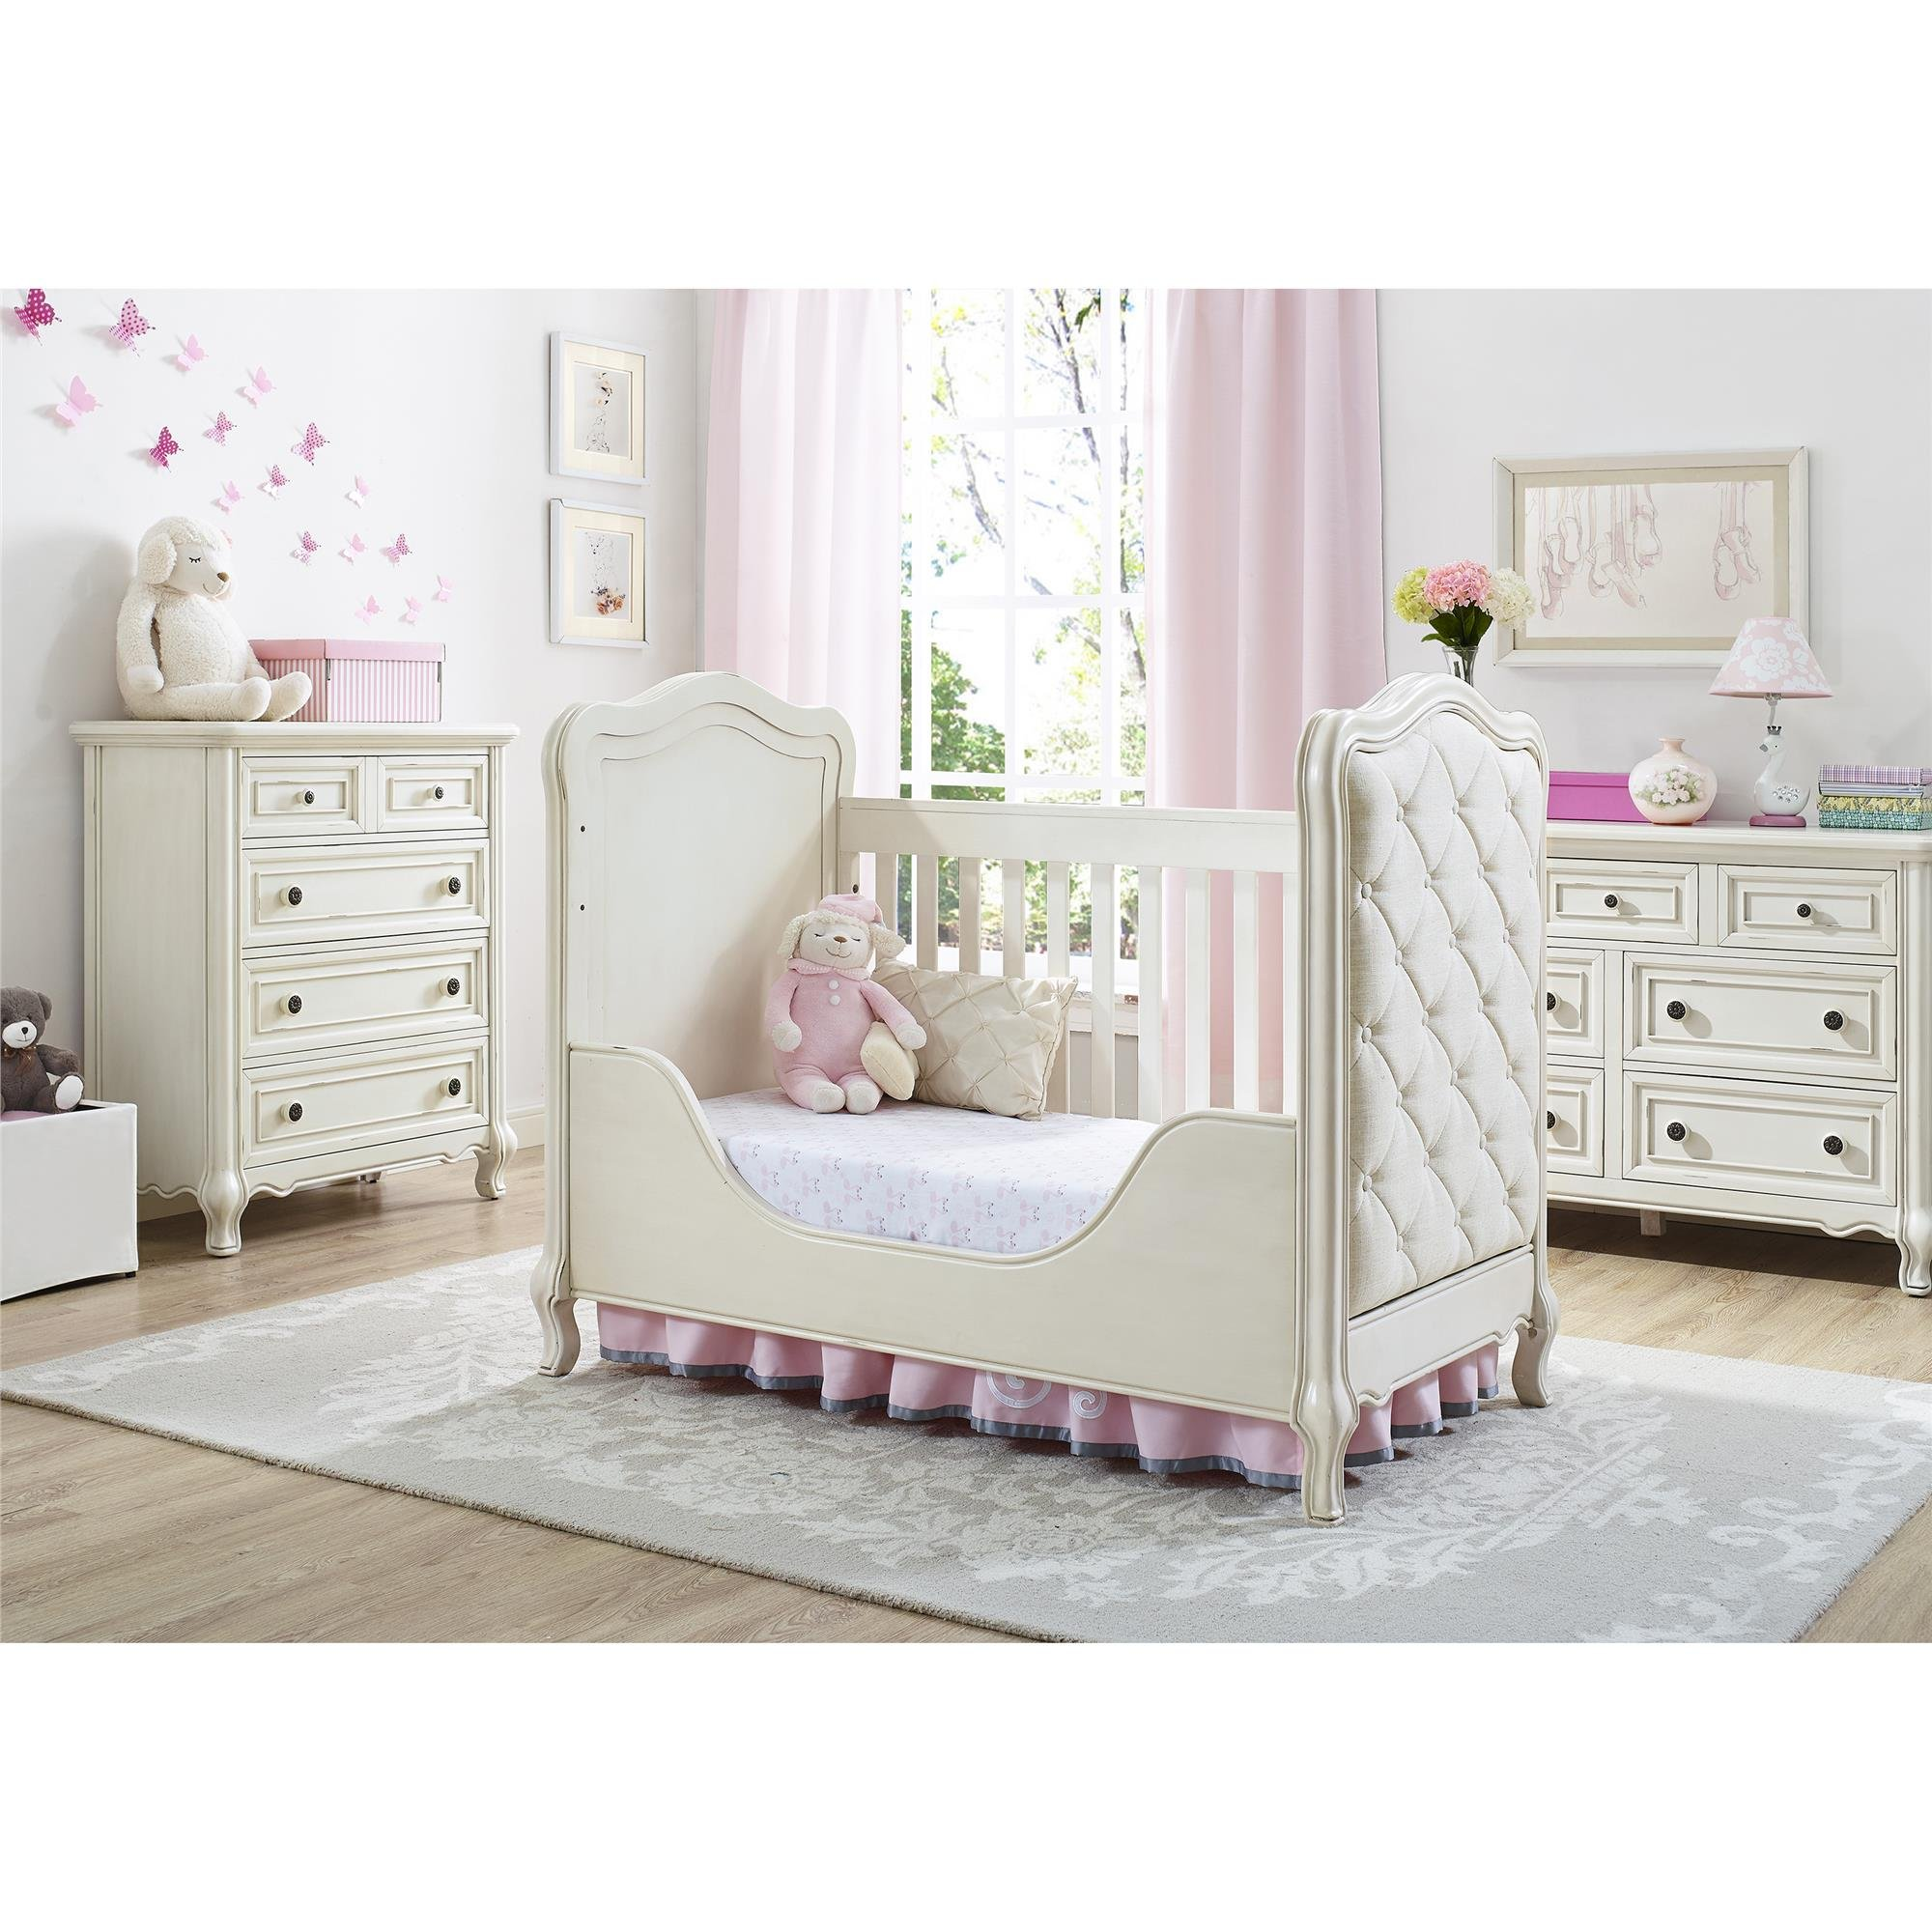 Baby Knightly 7-Drawer Dresser, Antique White by Baby Knightly (Image #2)